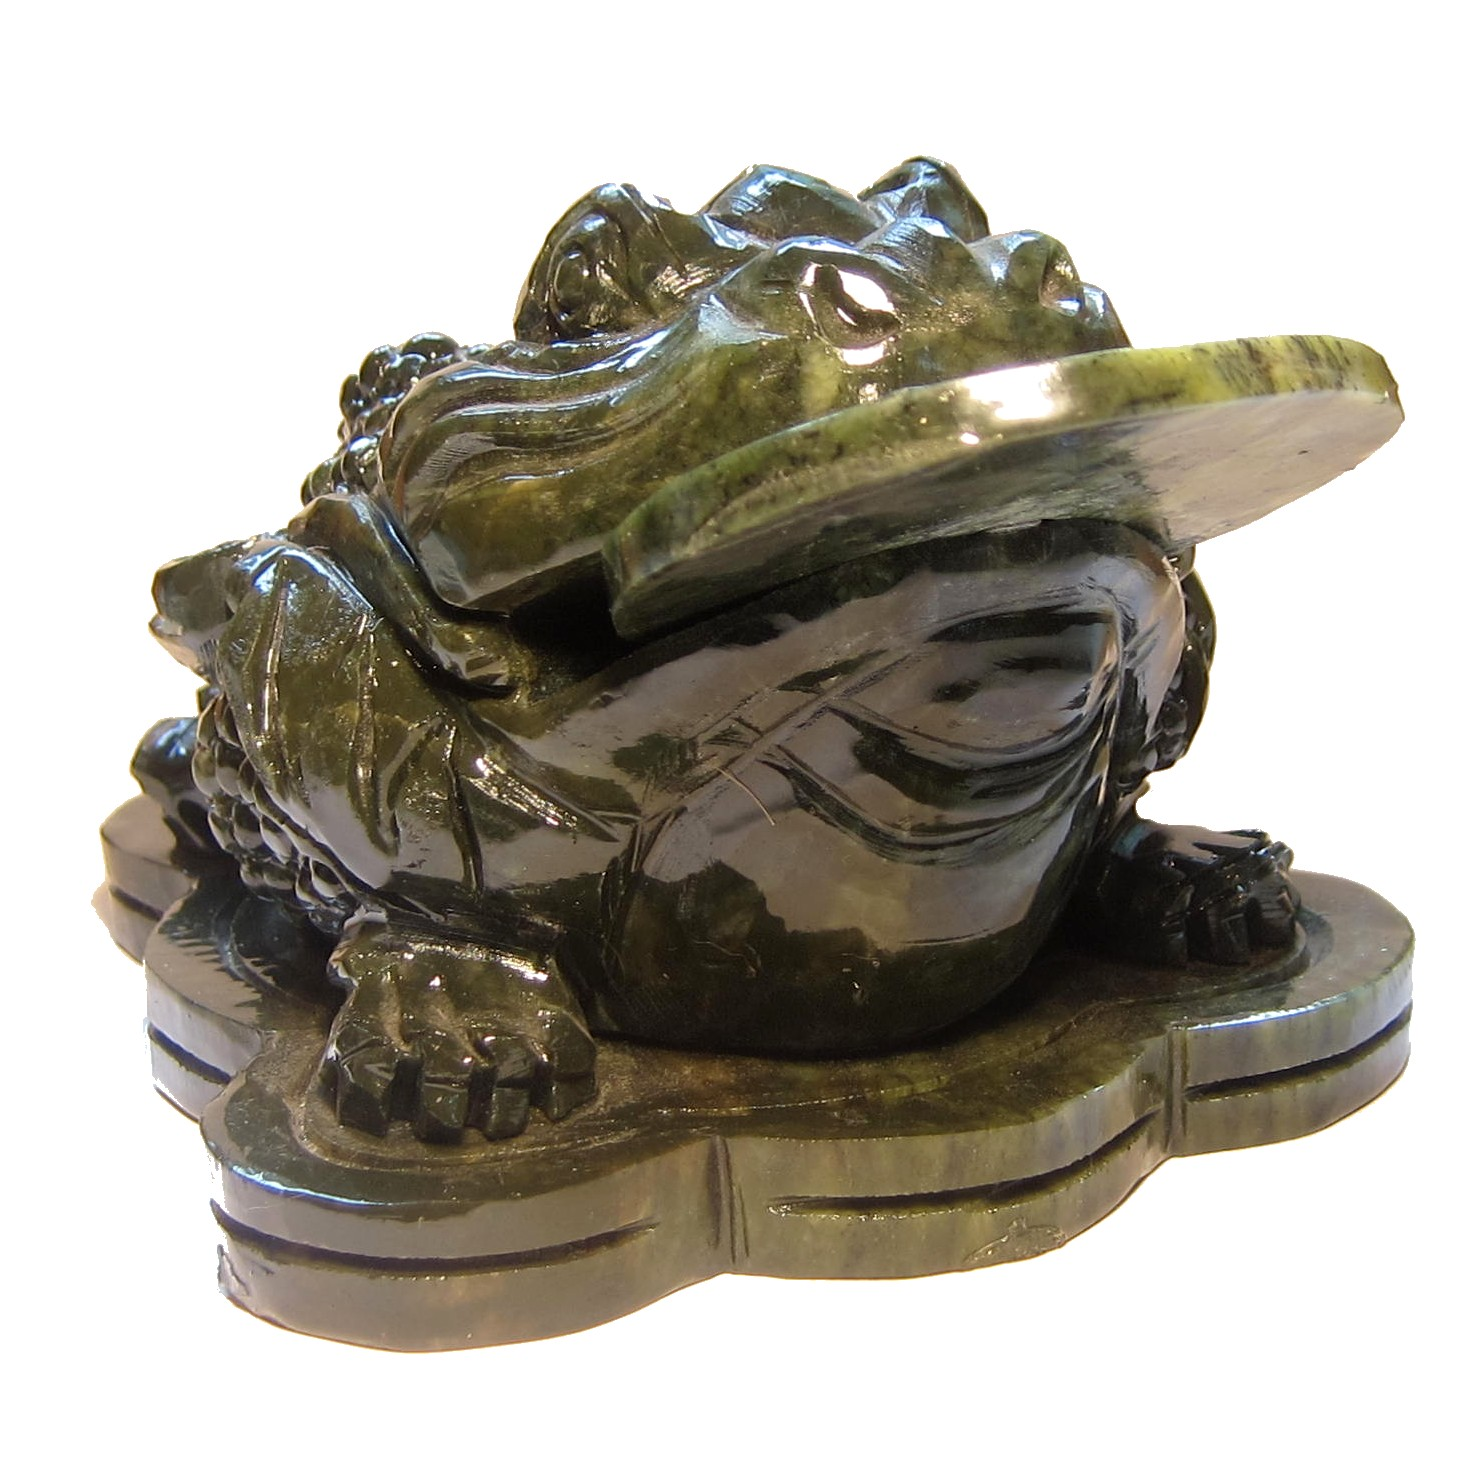 jade frog with coin in mouth